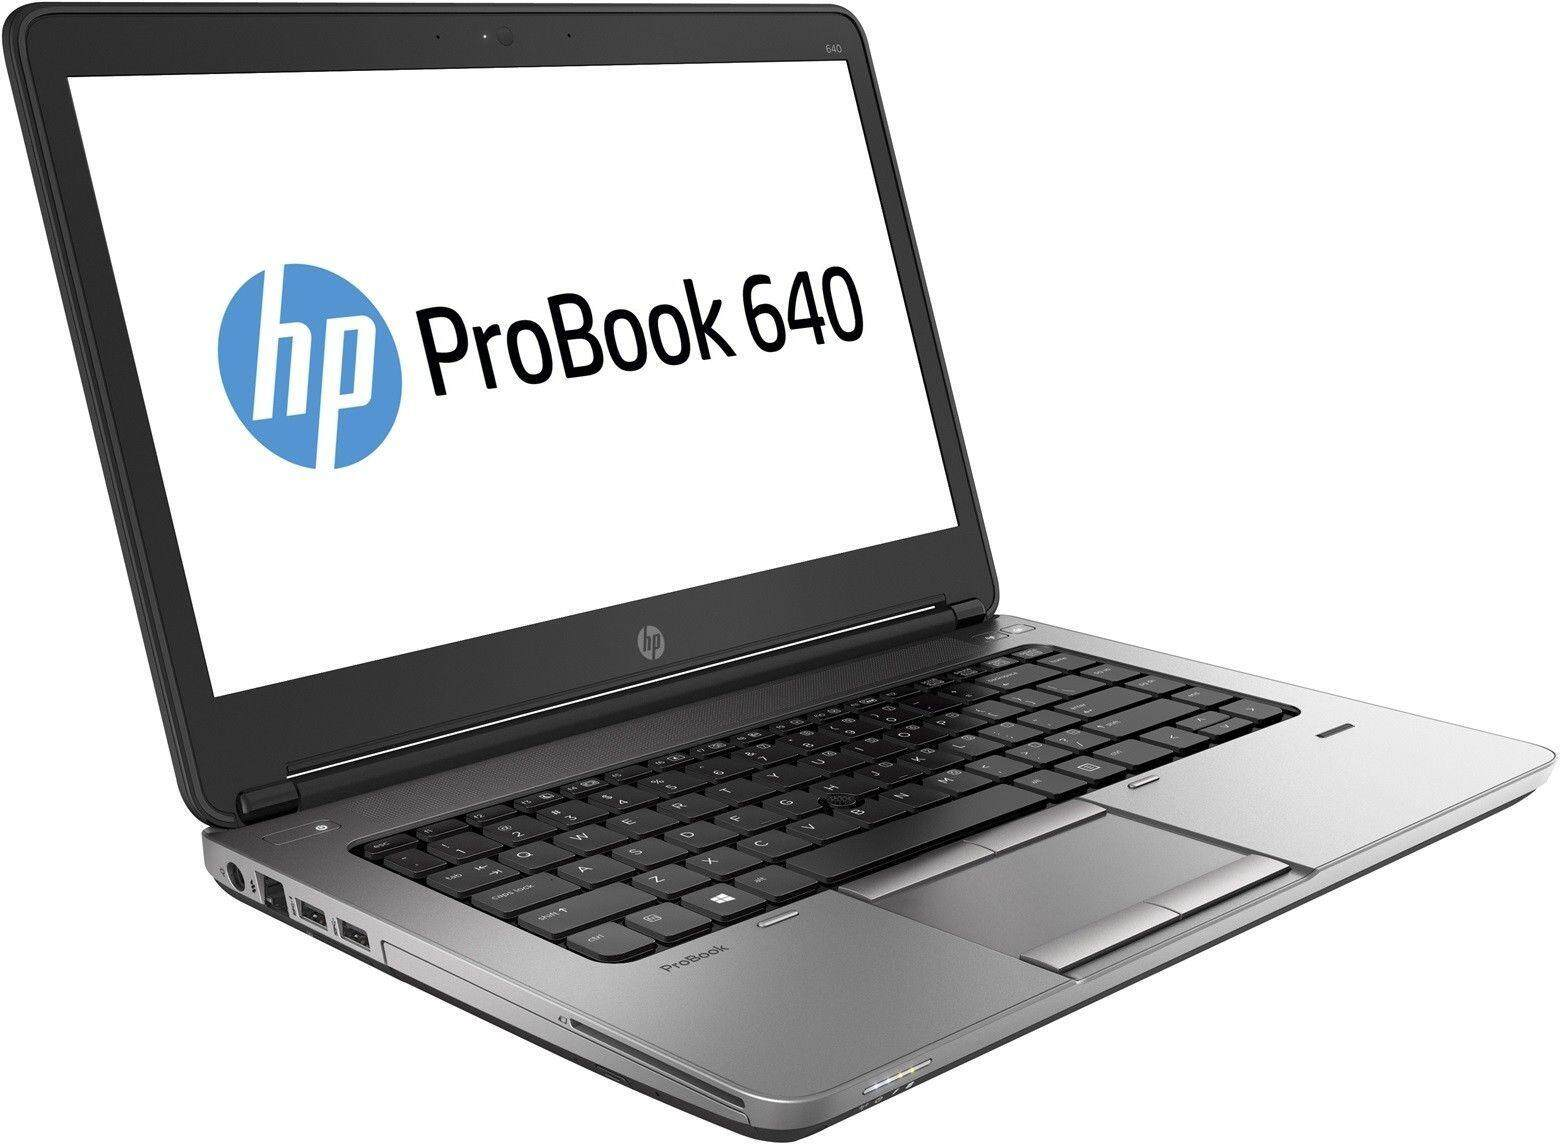 HP ProBook 640 G1 ( Laptop (Core i5 4th Gen/4 GB/500 GB/Windows 8) Malaysia